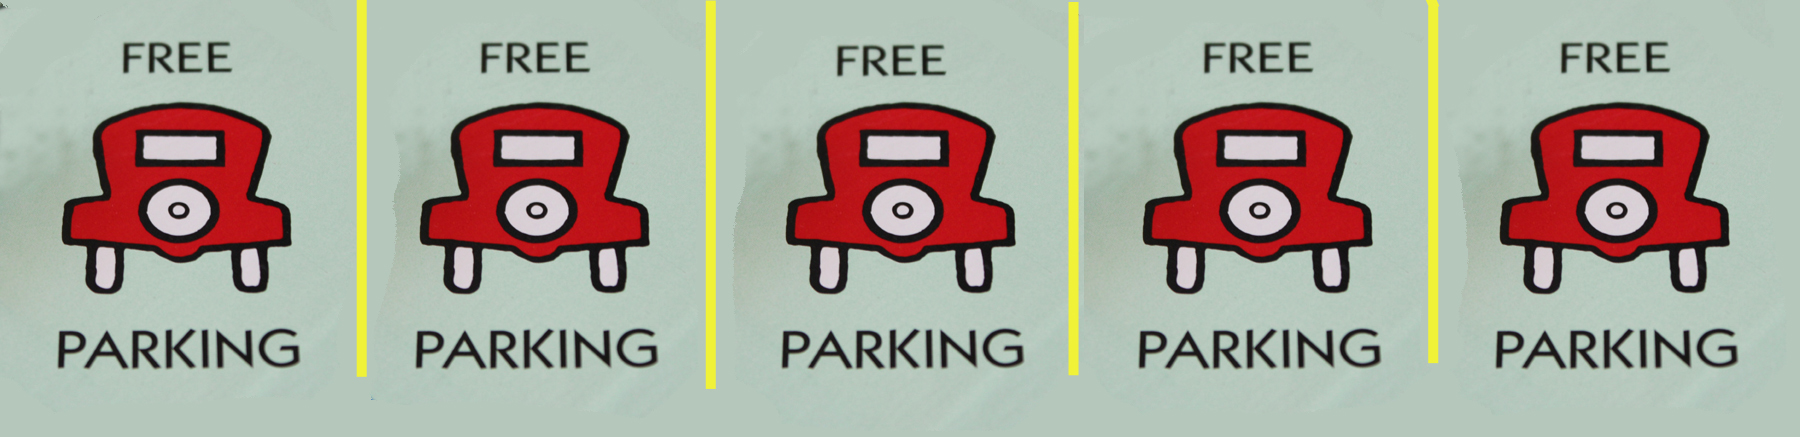 Free parking isn't really free